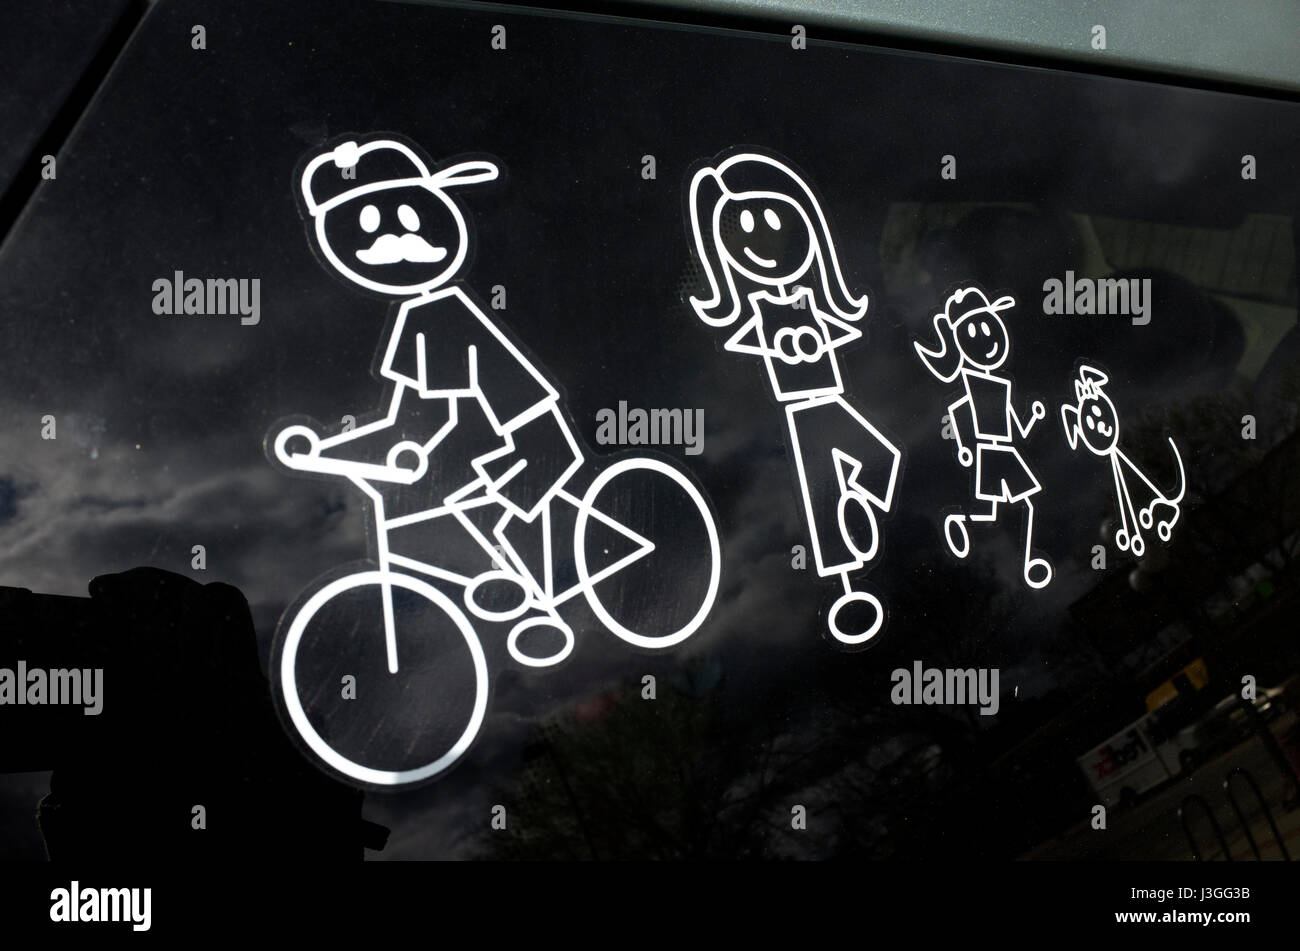 Car Design Drawings Stockfotos & Car Design Drawings Bilder - Alamy